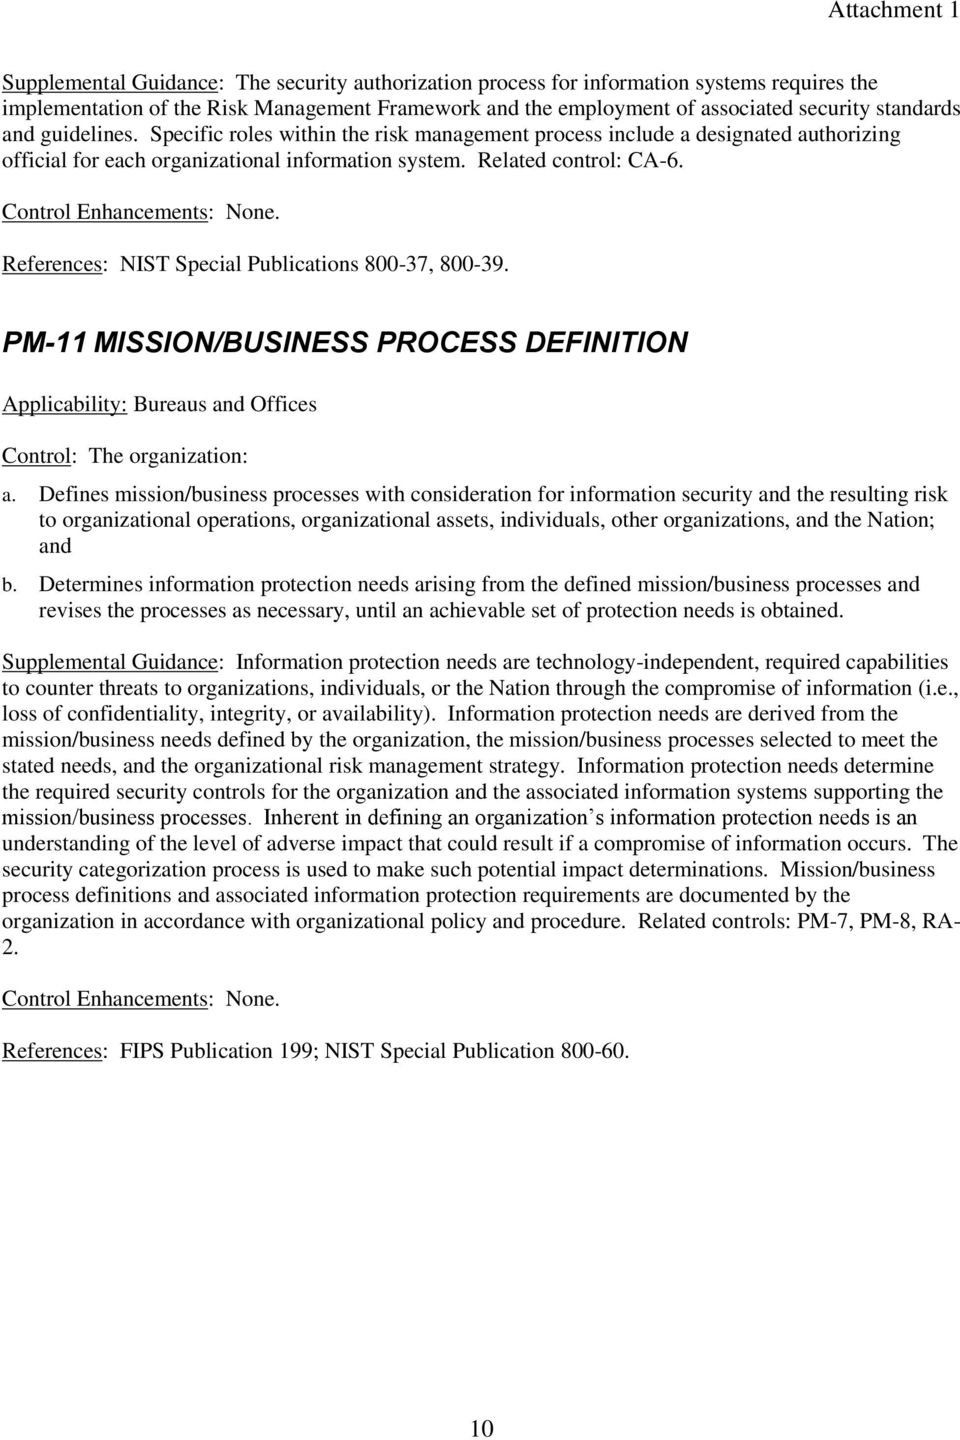 References: NIST Special Publications 800-37, 800-39. PM-11 MISSION/BUSINESS PROCESS DEFINITION Control: The organization: a.